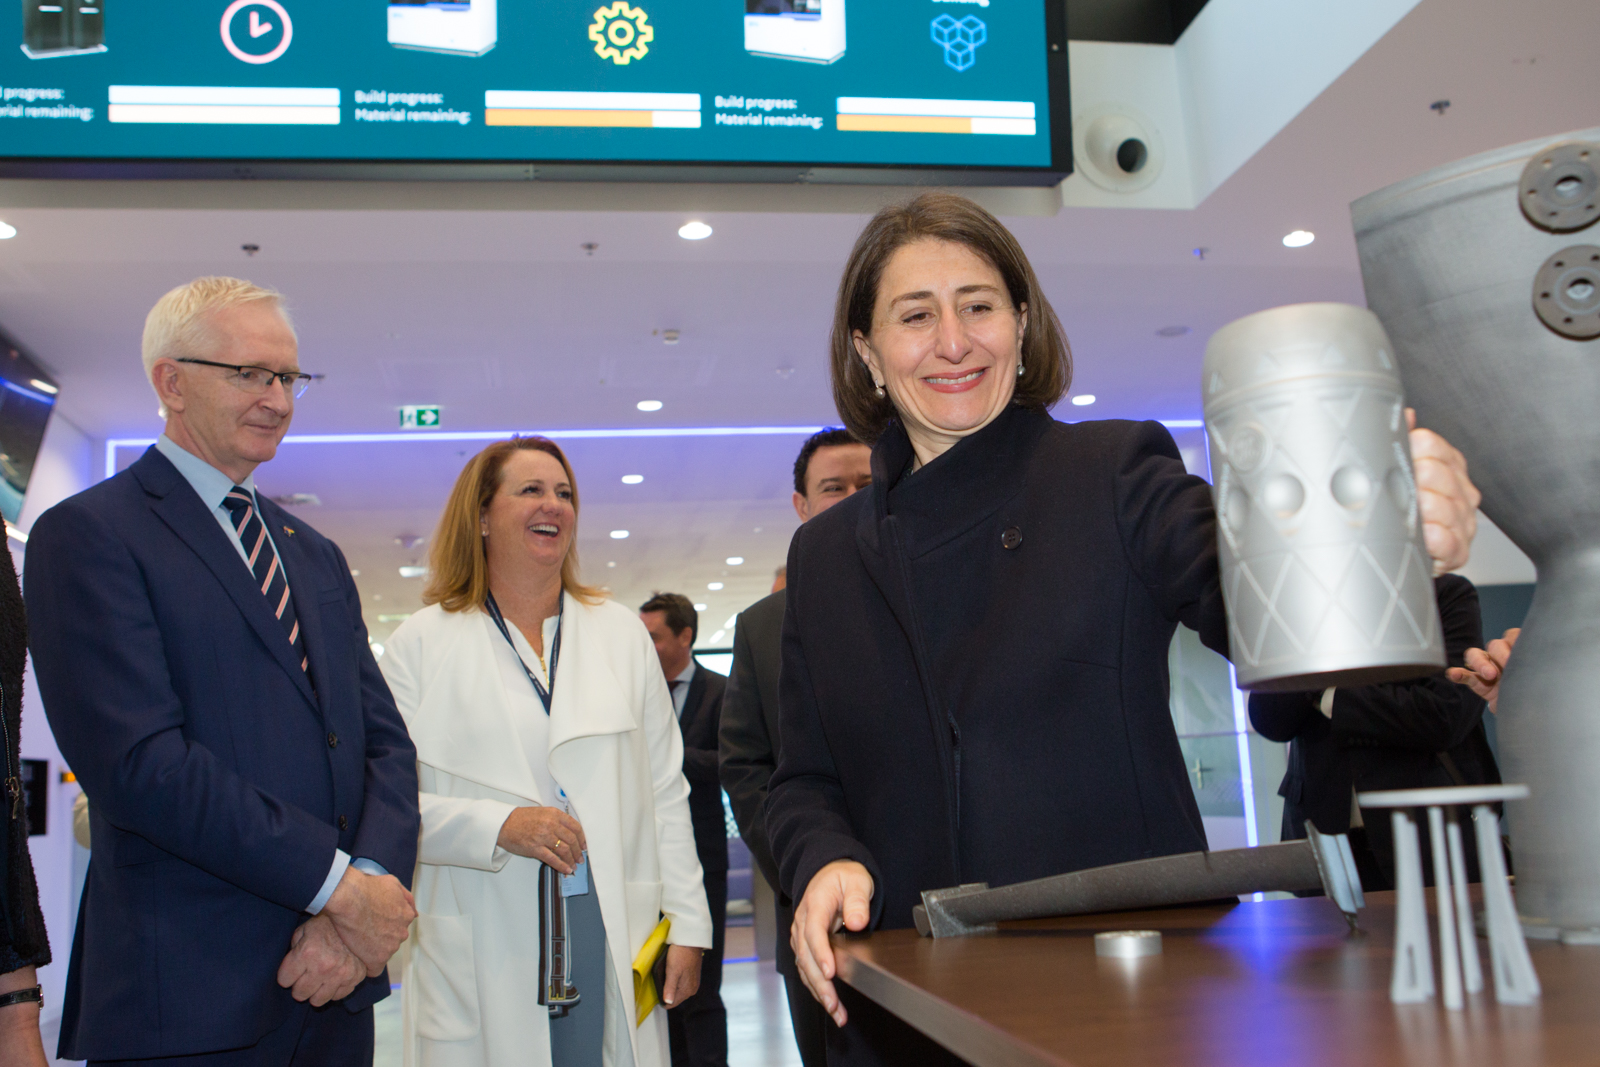 NSW Government Premier Gladys Berejiklian tours GE Additive's CEC Munich as part of an MoU signing ceremony. Photo via GE Additive.